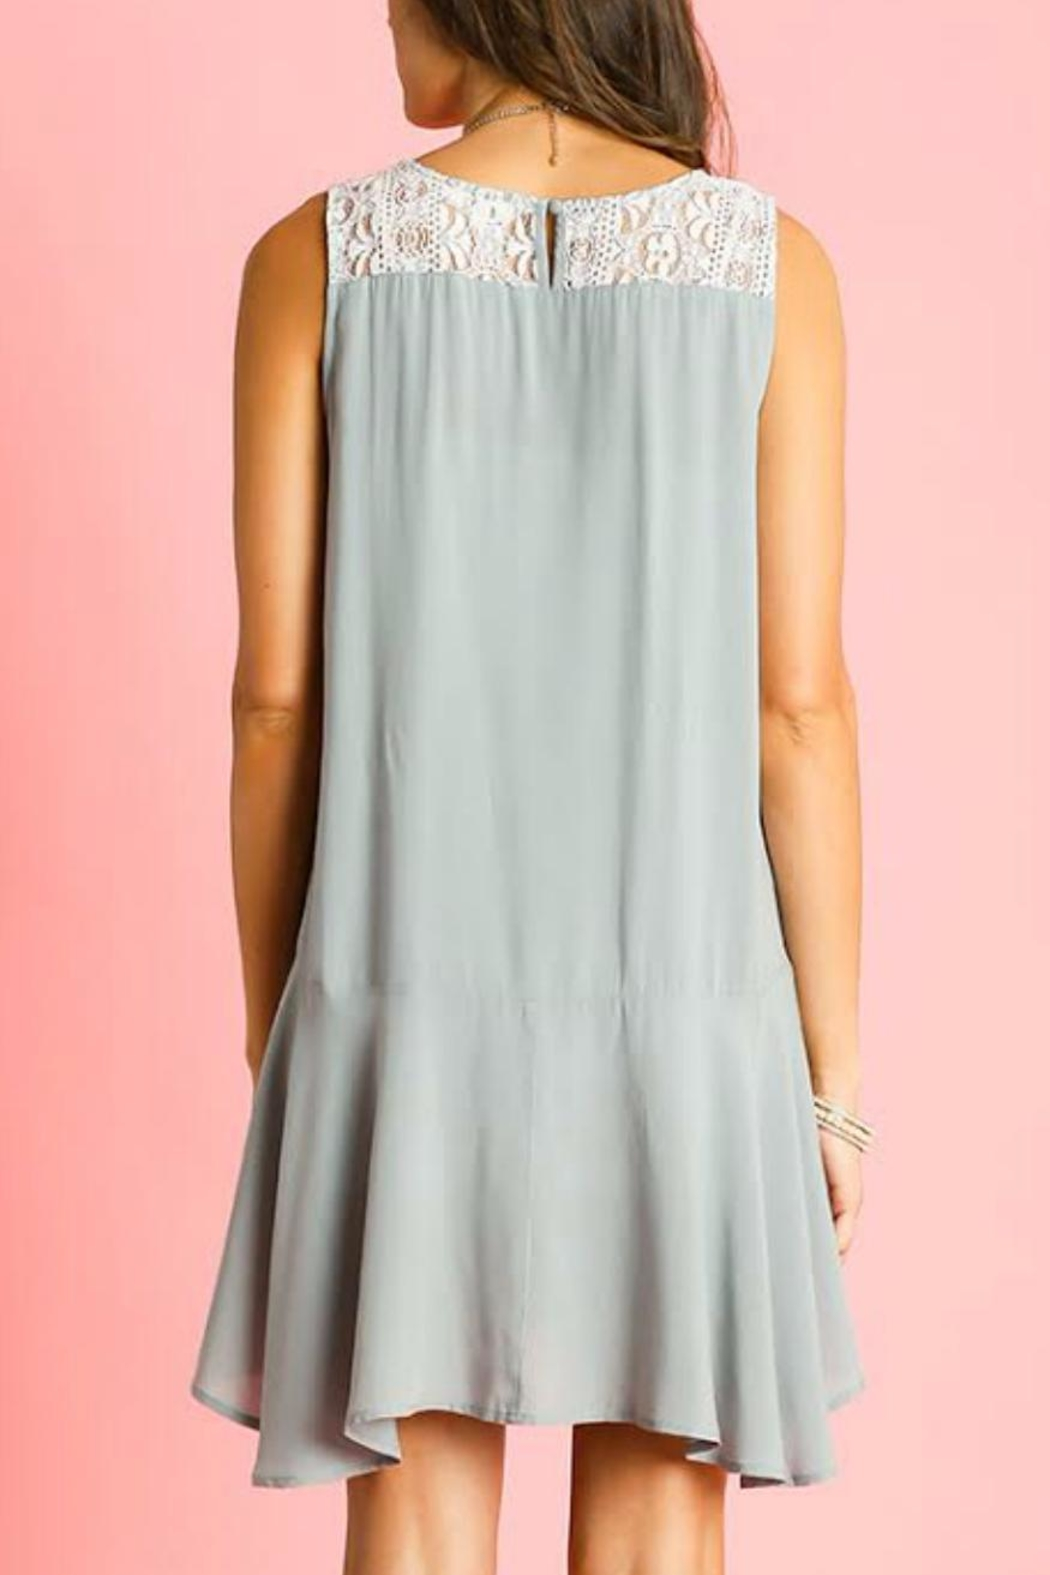 Umgee USA Sleeveless Ruffle Dress - Front Full Image